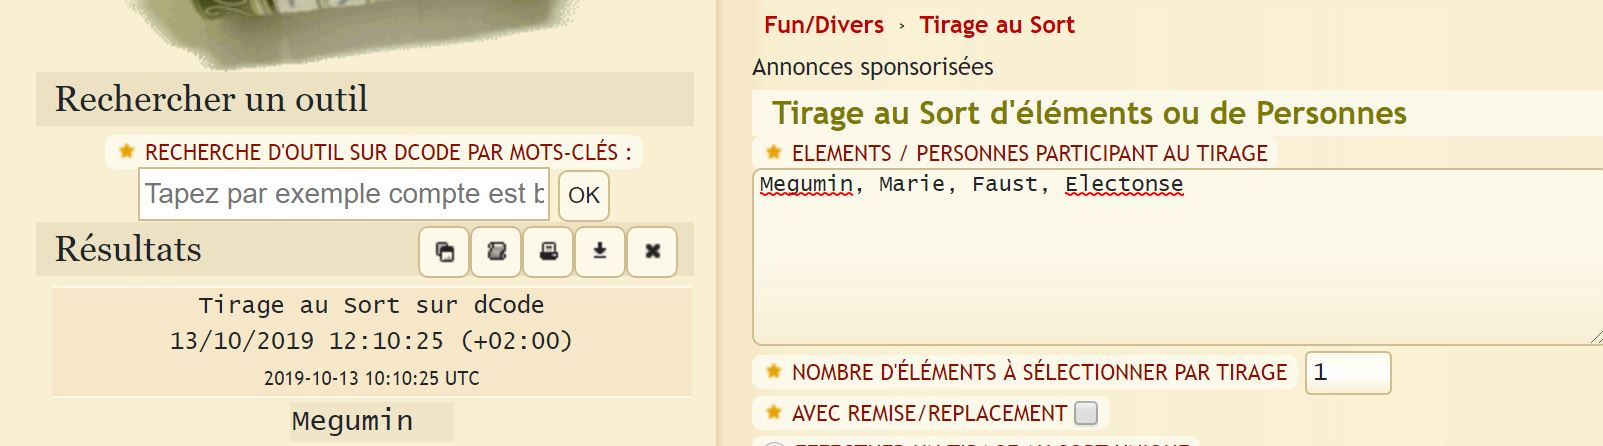 [NW RACE CUP] #2 - Sensations Fortes 1570961467-2